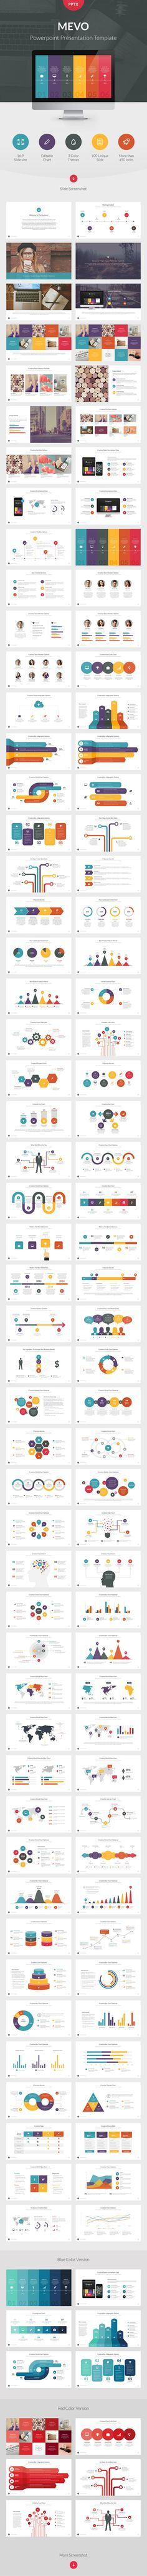 Buy Mevo Powerpoint Presentation Template by vuuuds on GraphicRiver. Mevo Powerpoint Presentation Template for you that you need professional, clean, creative, simple presentation templ. Keynote Presentation, Design Presentation, Powerpoint Presentation Templates, Keynote Template, Powerpoint Presentations, Portfolio Presentation, Design Sites, Interaktives Design, Slide Design